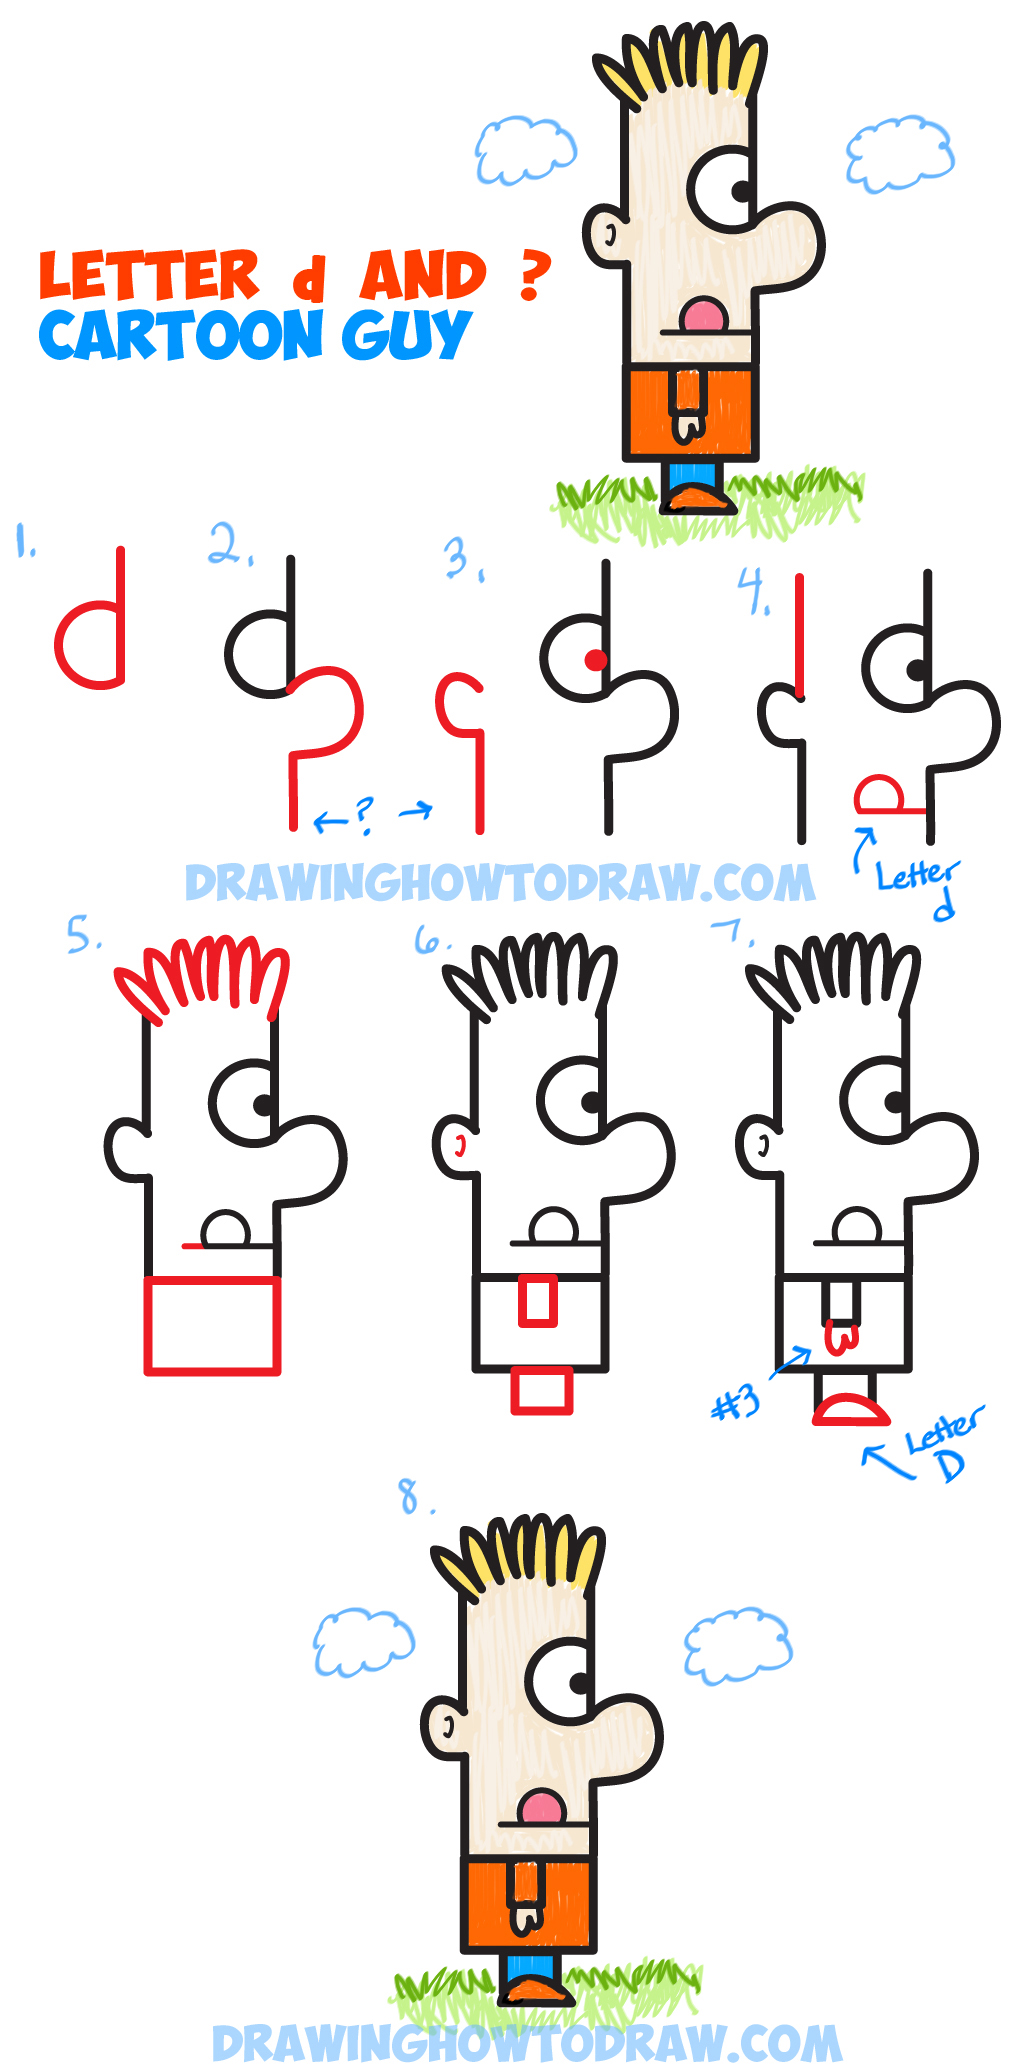 Learn How to Draw a Cartoon Guy from a Letter d and Question Mark : Easy Step by Step Drawing Tutorial for Kids